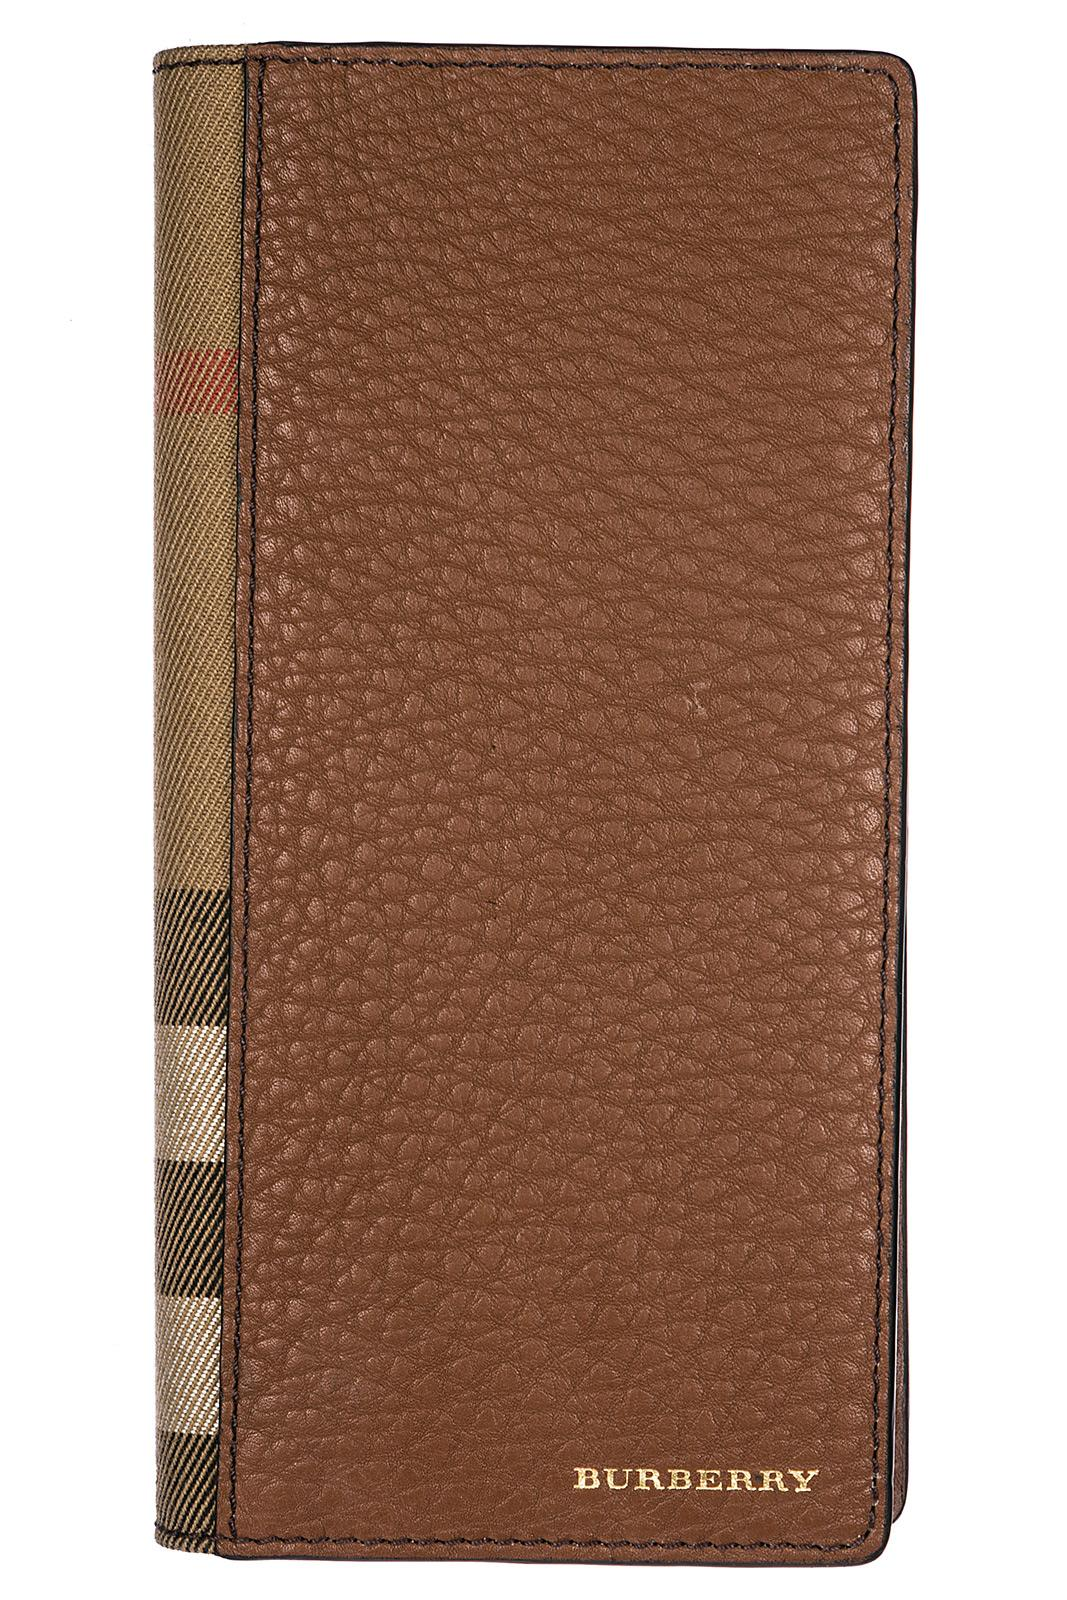 Burberry Men's Genuine Leather Wallet Credit Card Bifold  Cavendish In Brown